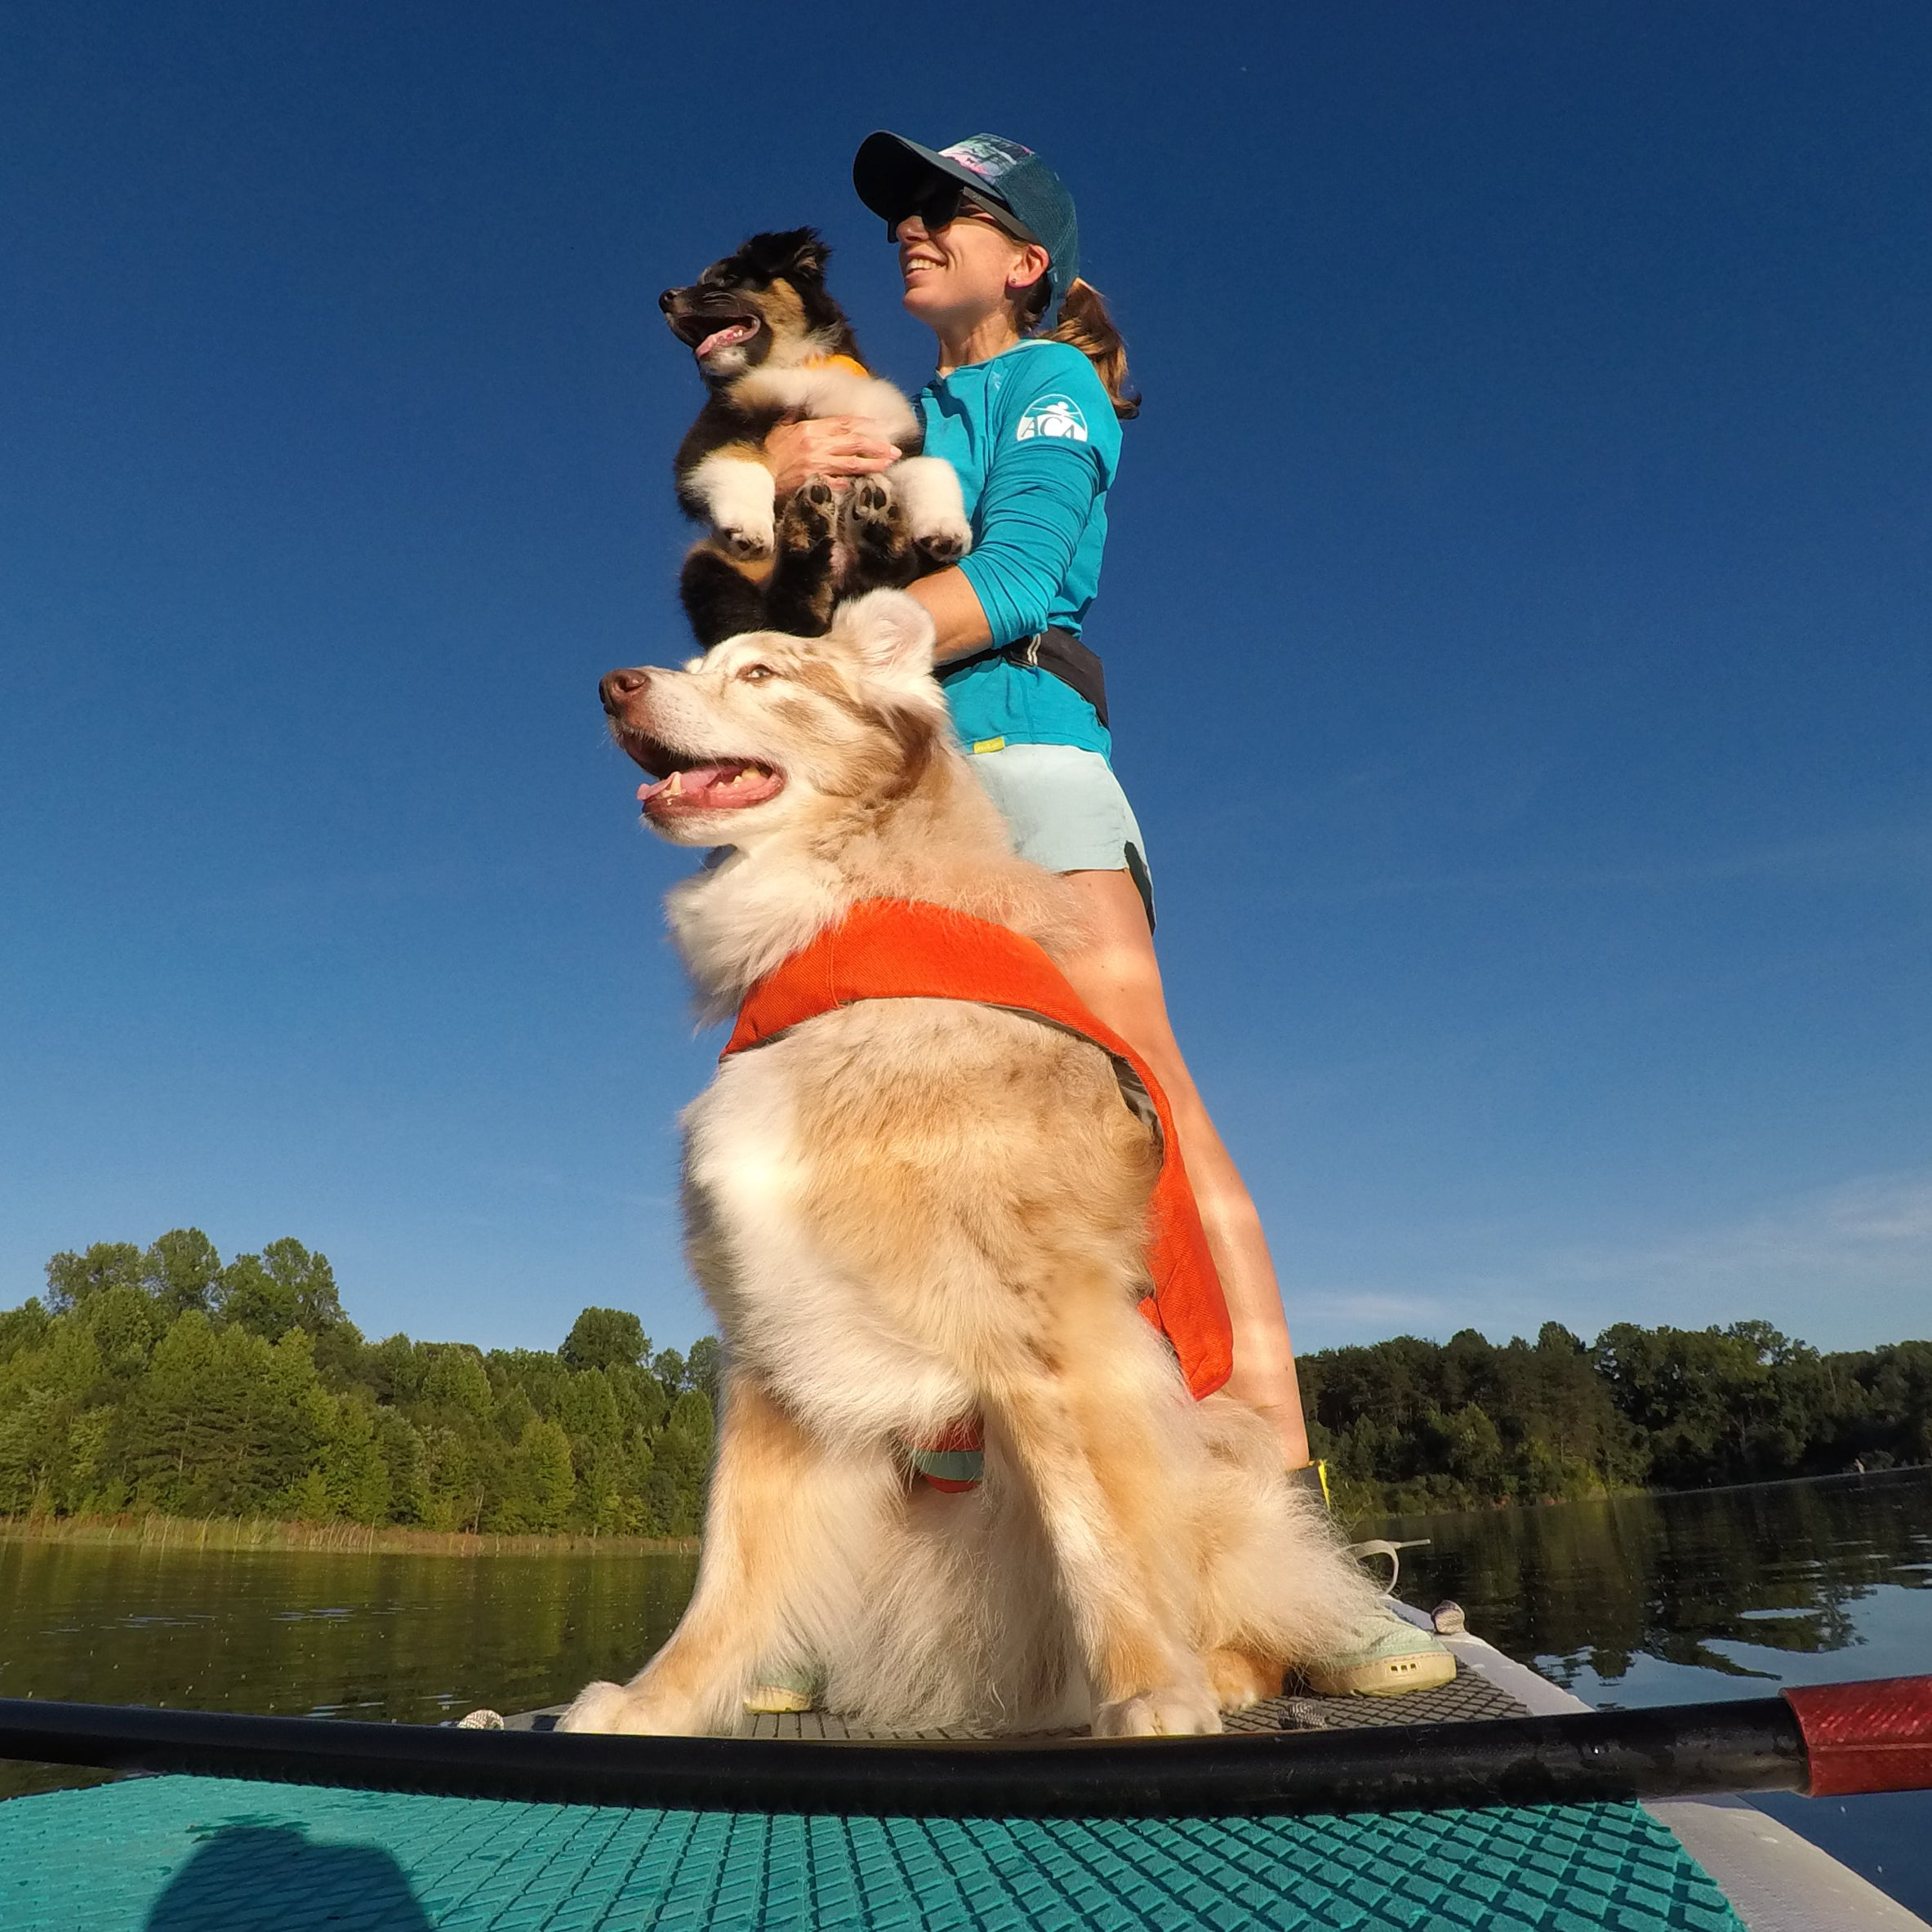 maria on stand up paddleboard with her two dogs in their float coat dog life jackets.